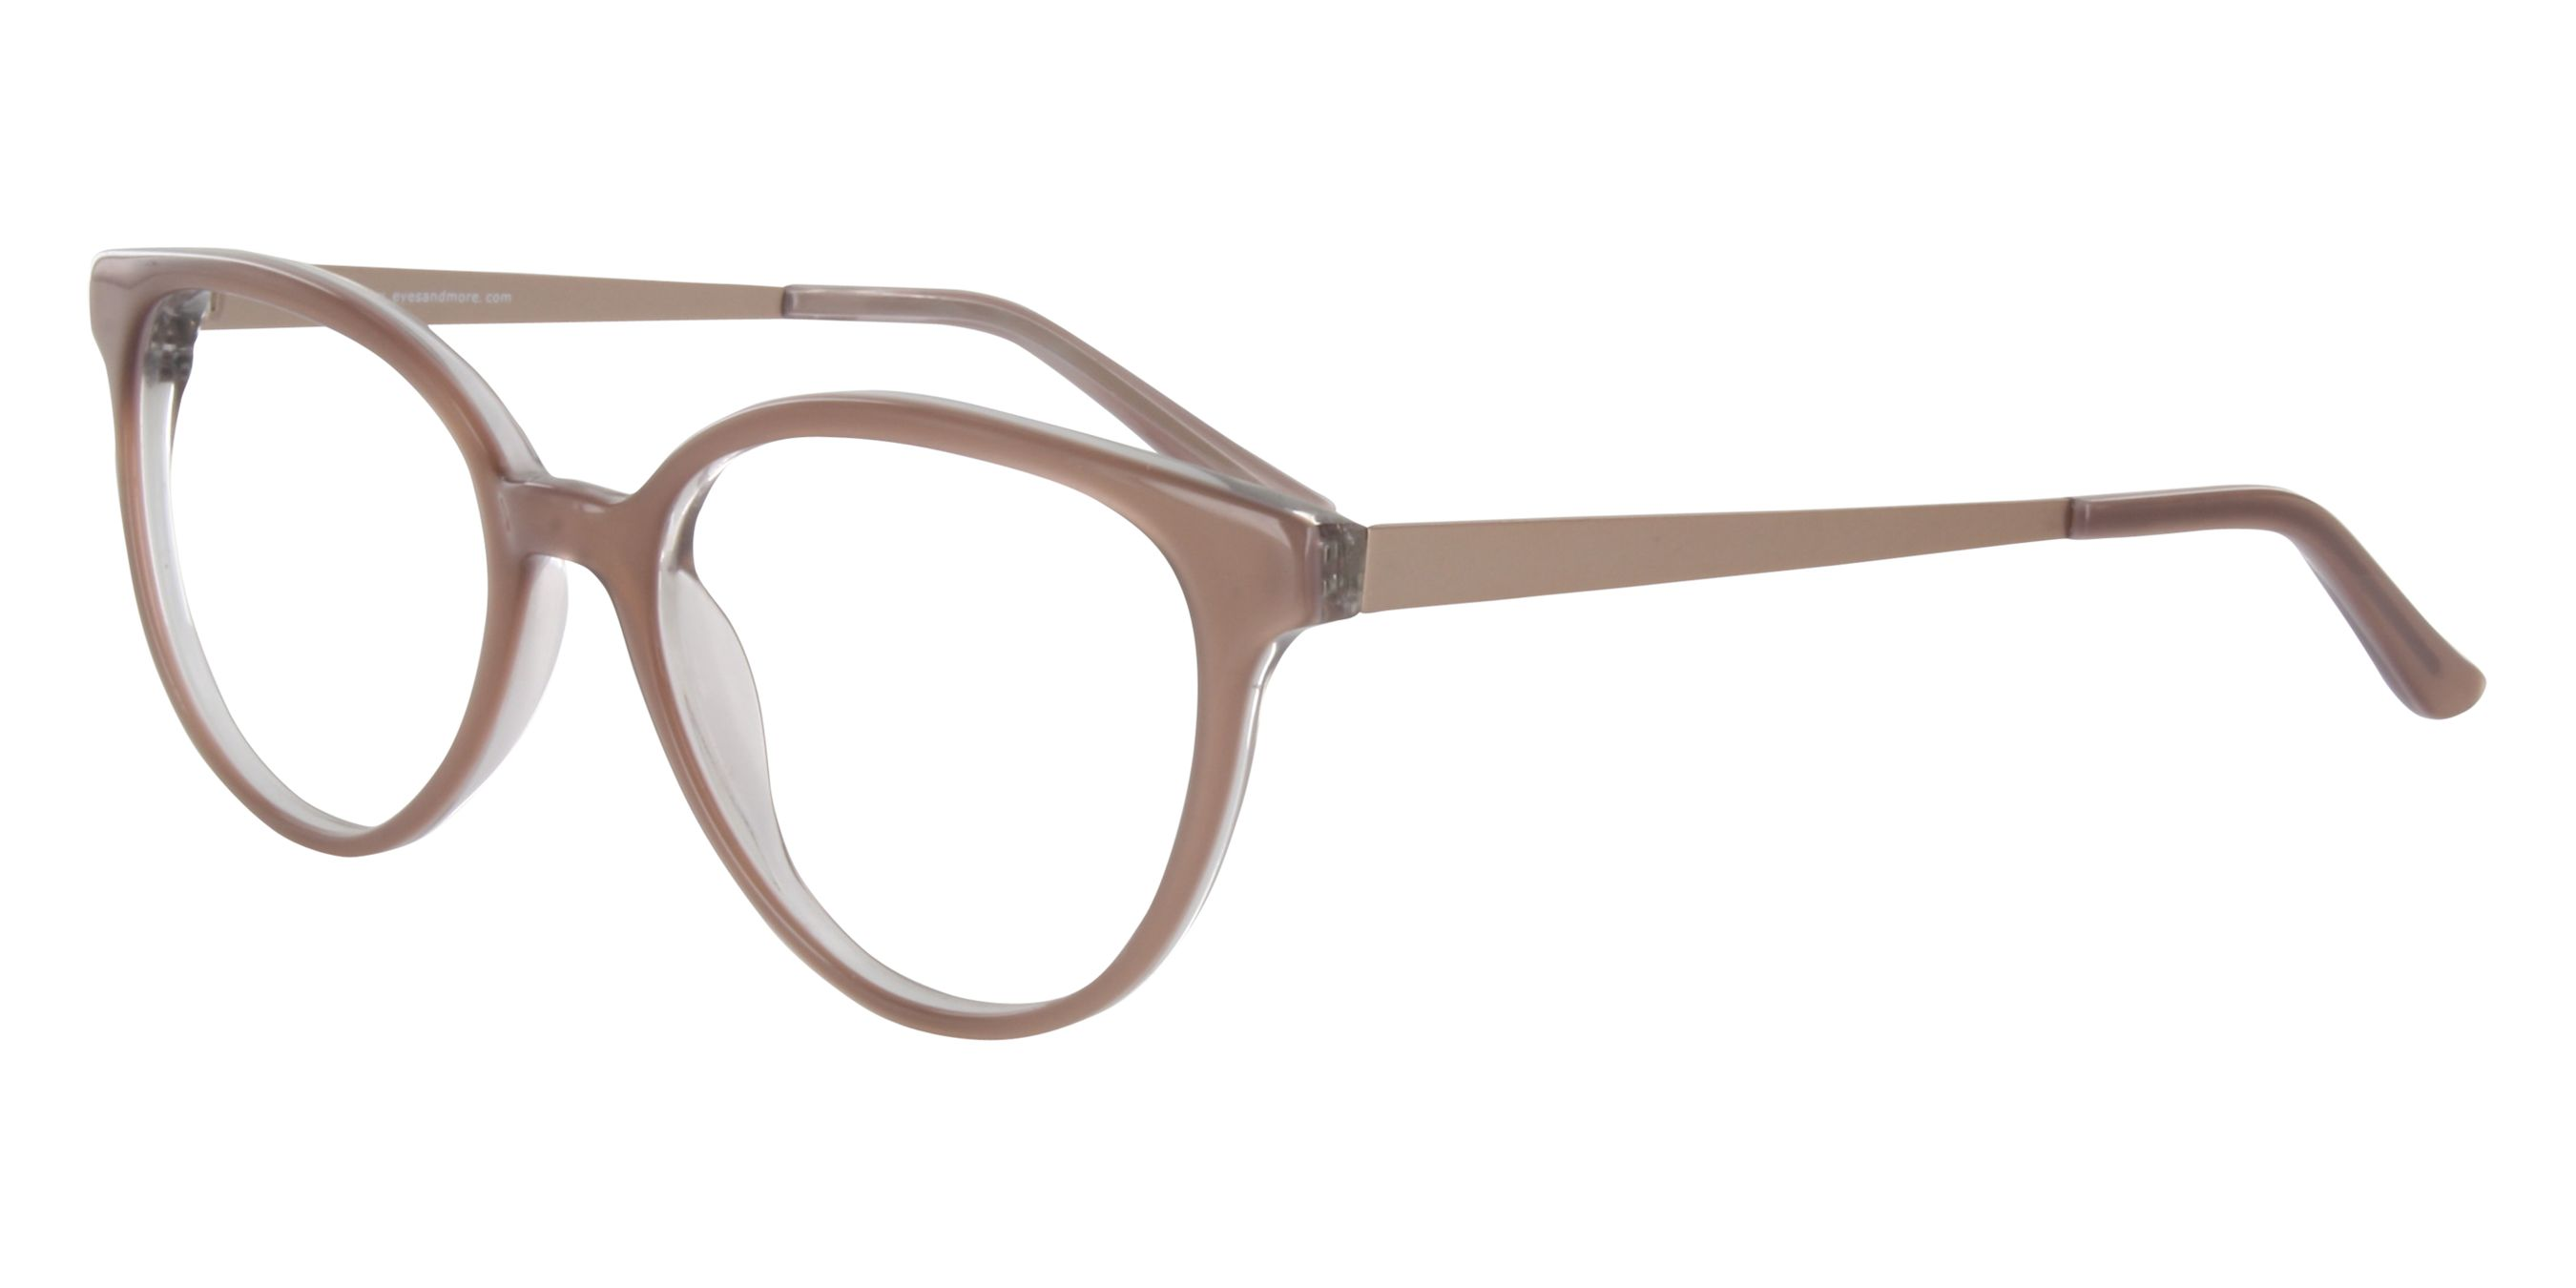 ANNAMARIA Brille Tan für Damen | eyes + more